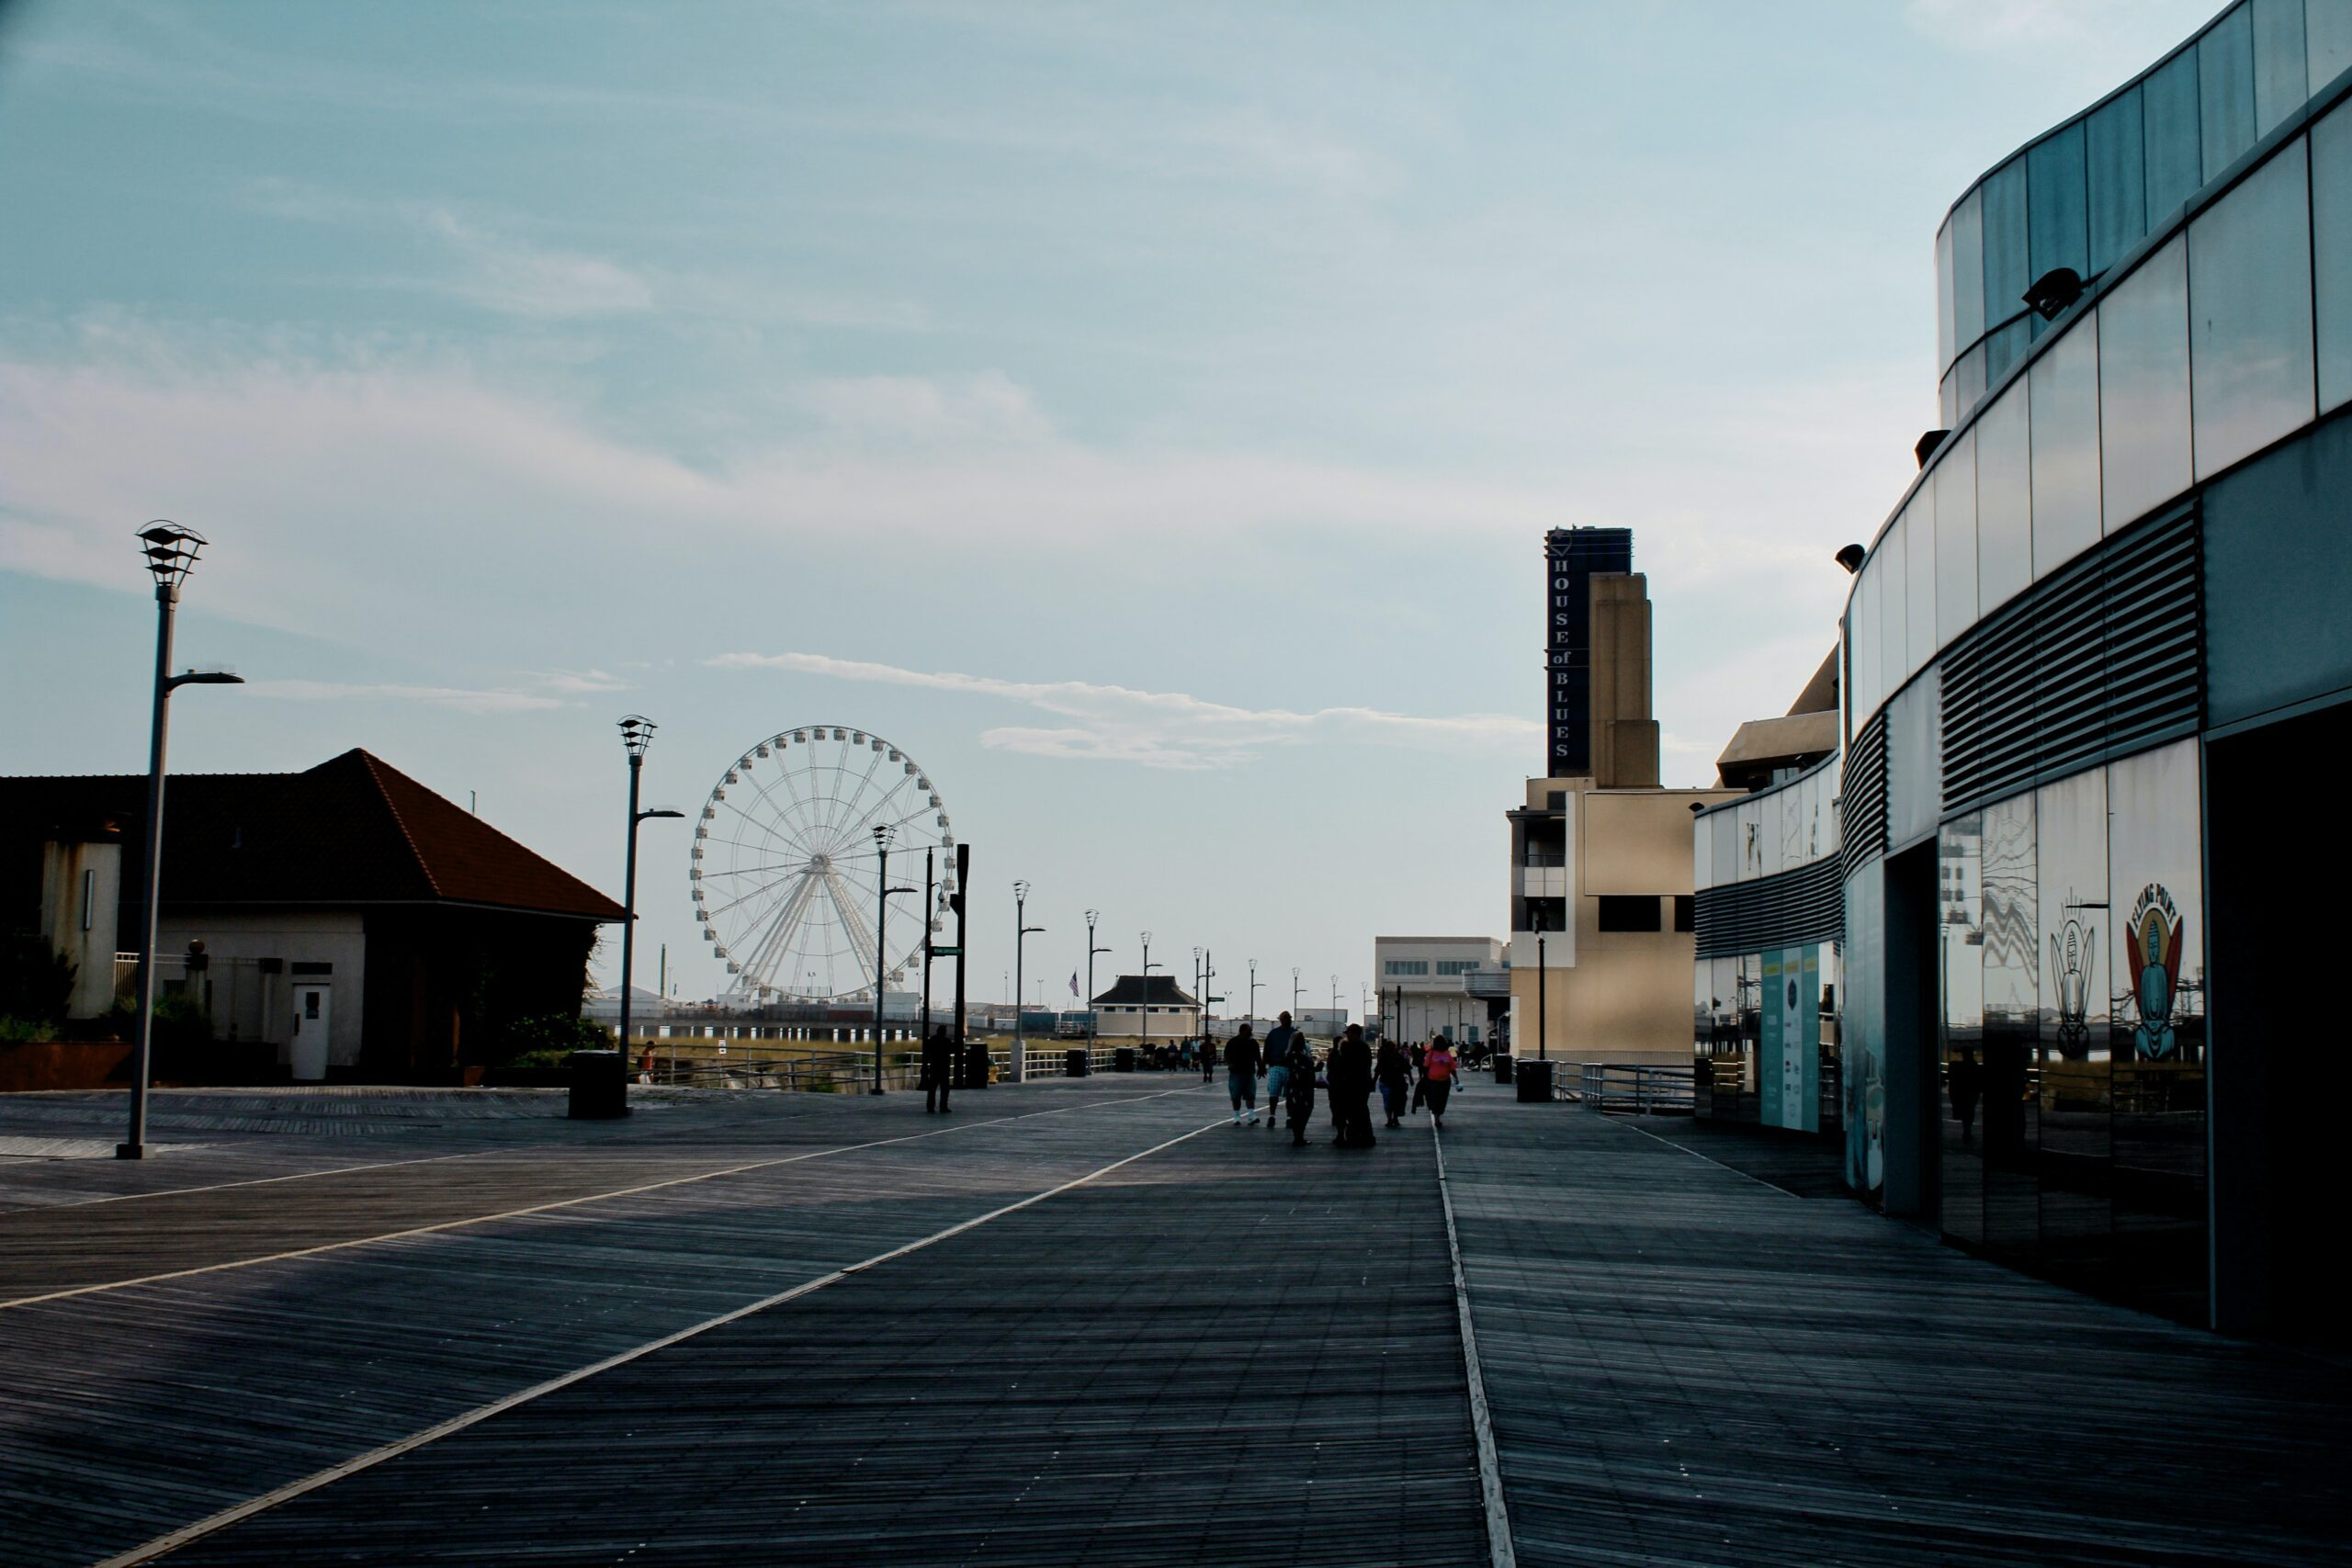 chermel-porter-Atlantic City NJ boardwalk with Ferris Wheel view-unsplash